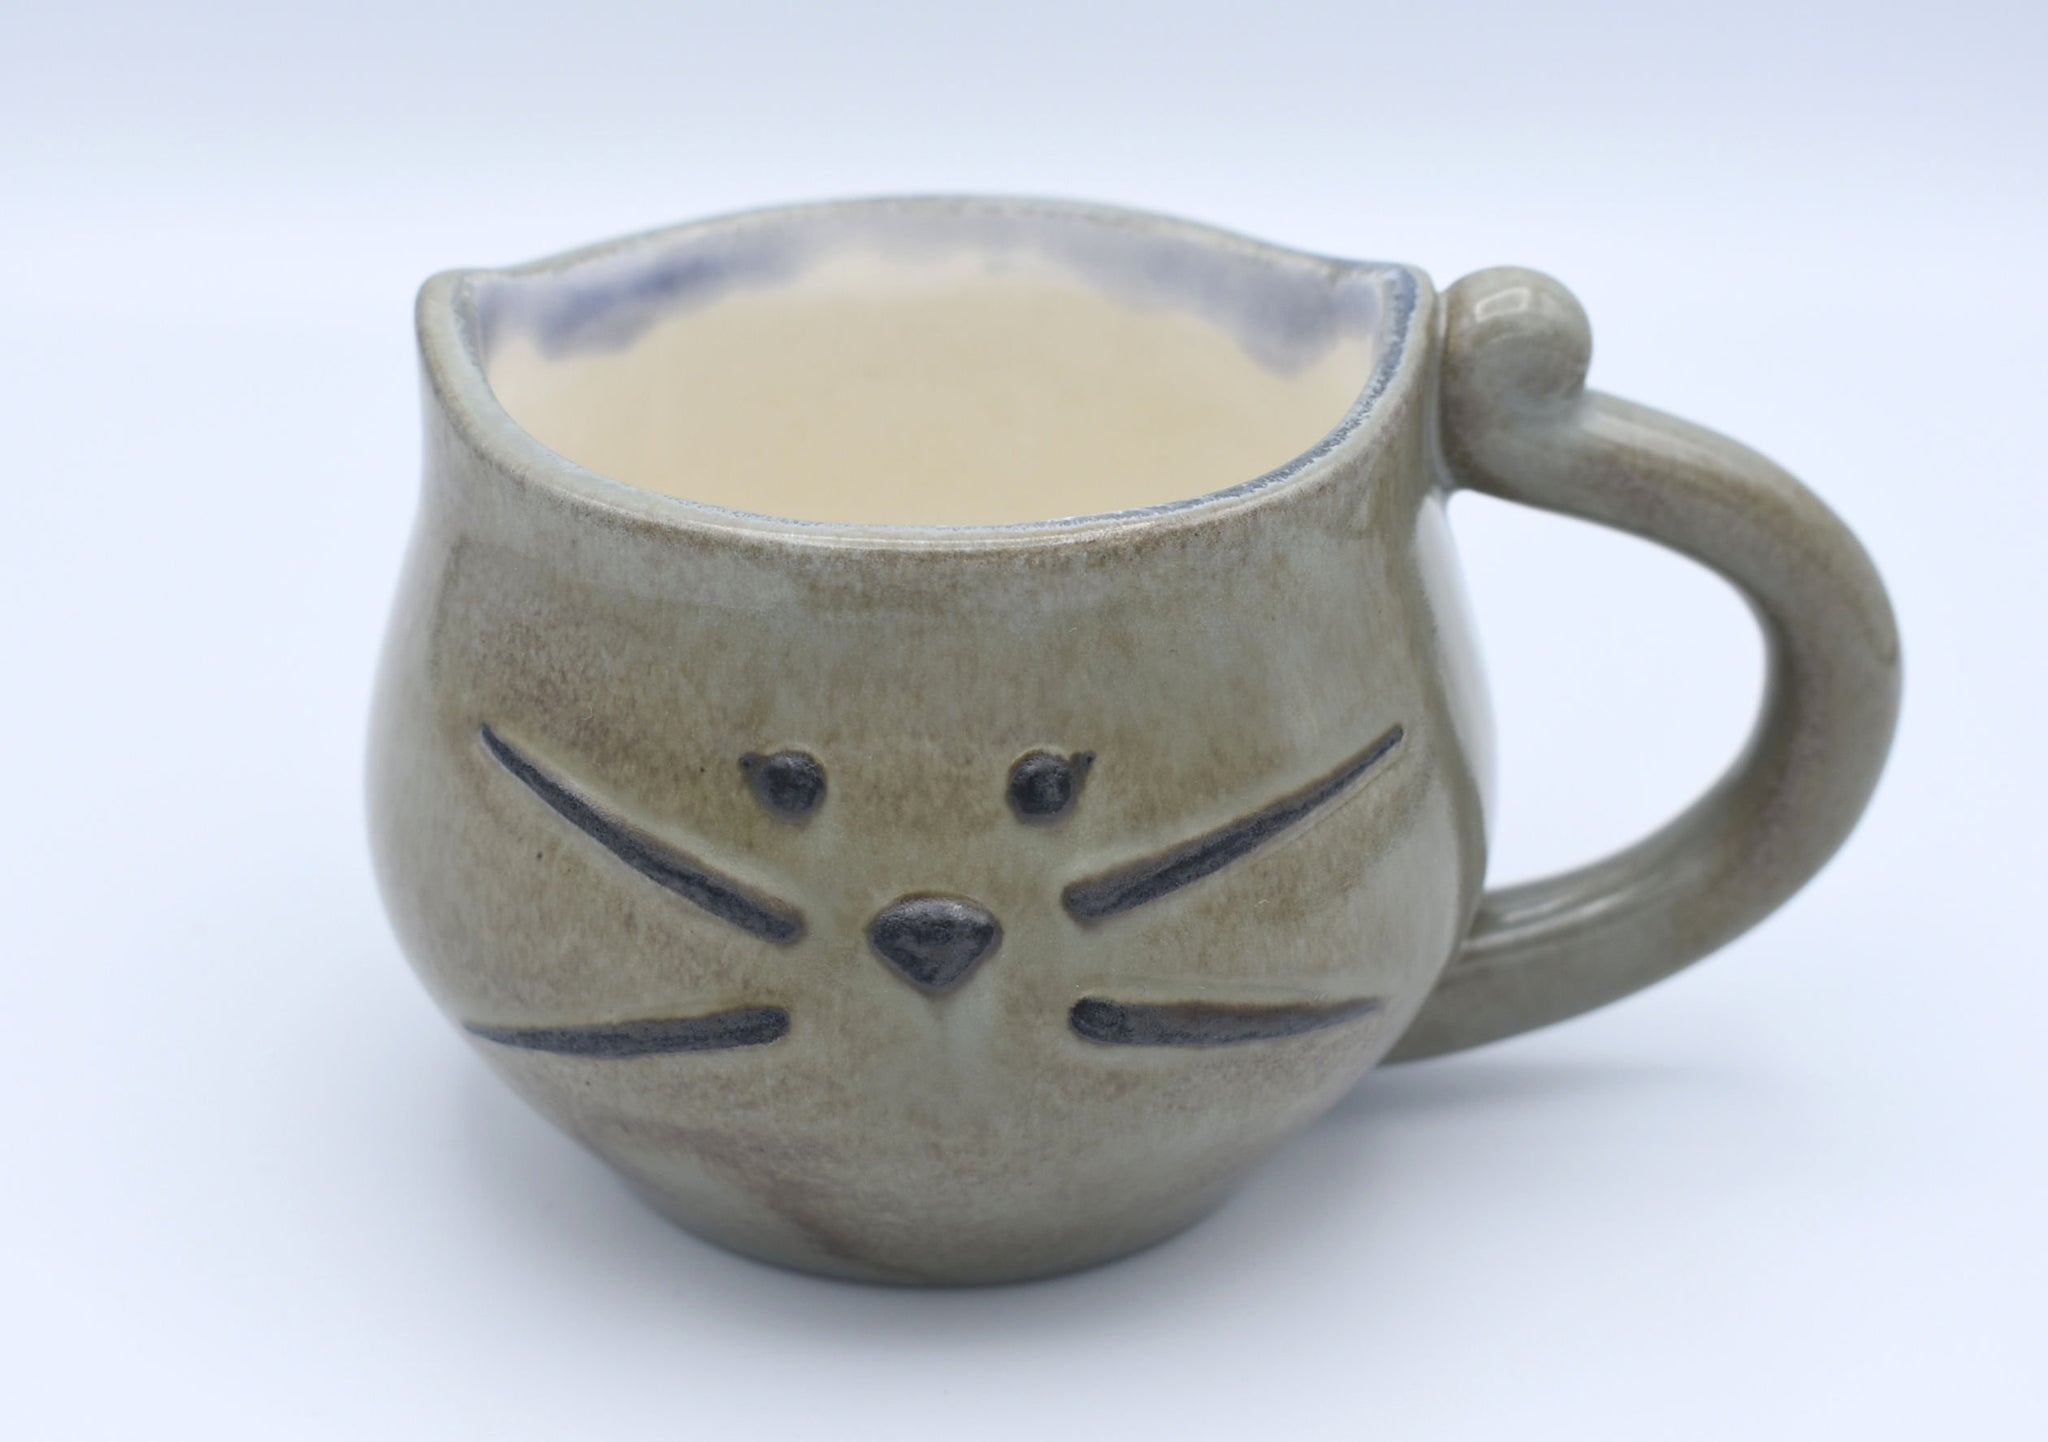 Grey Kitty Mug, Kitty Cat Cup, Cat Lovers Mug, Handmade Mug, Ceramic Mug, Tea Mug, Cat Lover Gift